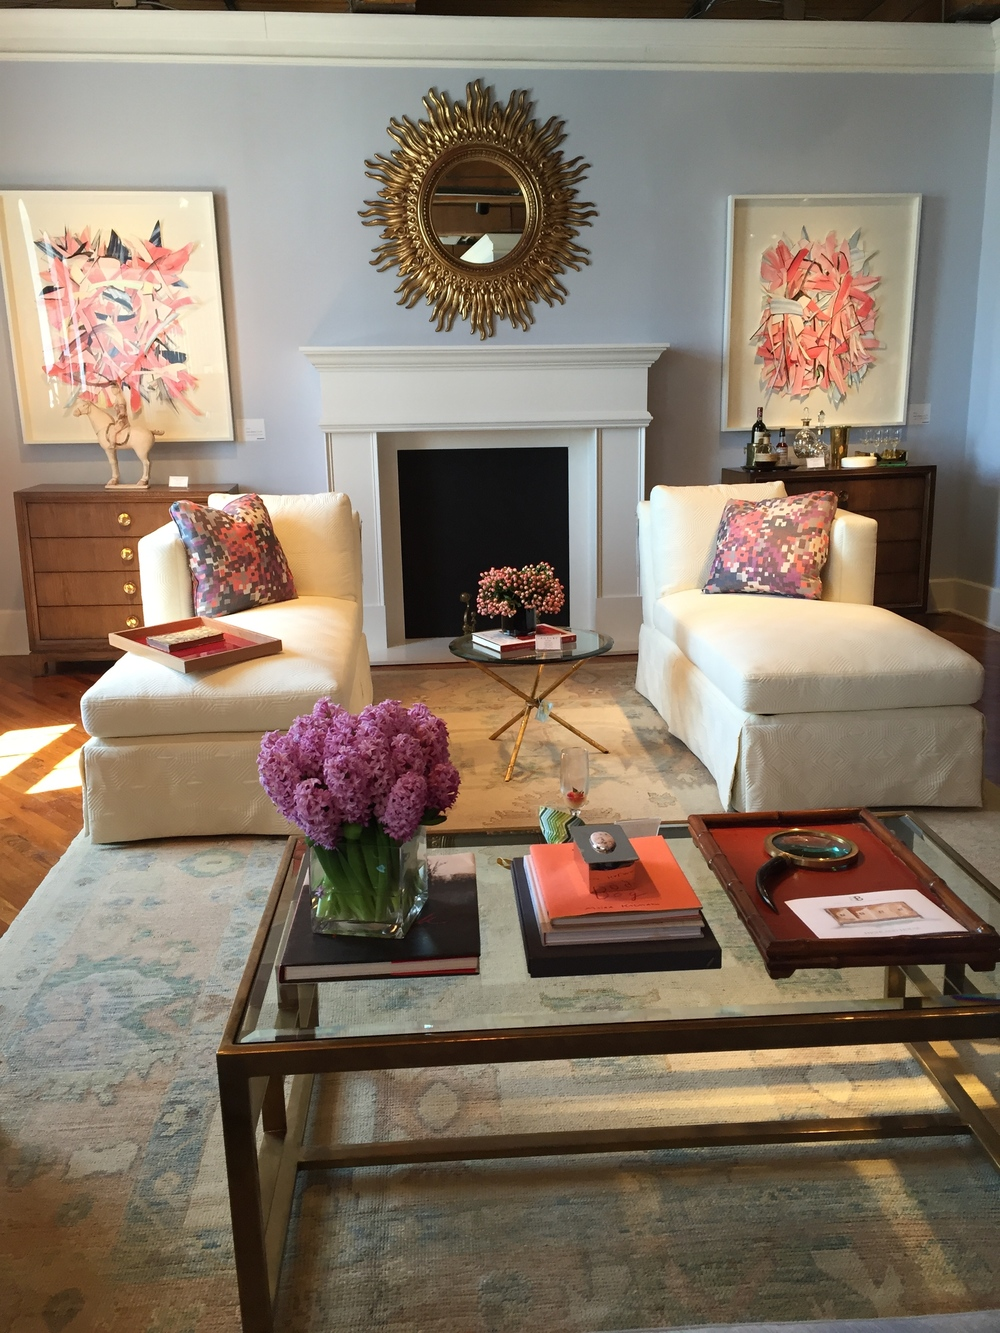 ... Launch In High Point Was That Of Stylish Interior Designer Barrie  Benson, Who Recently Debuted A 12 Piece Furniture Collection With Highland  House ...